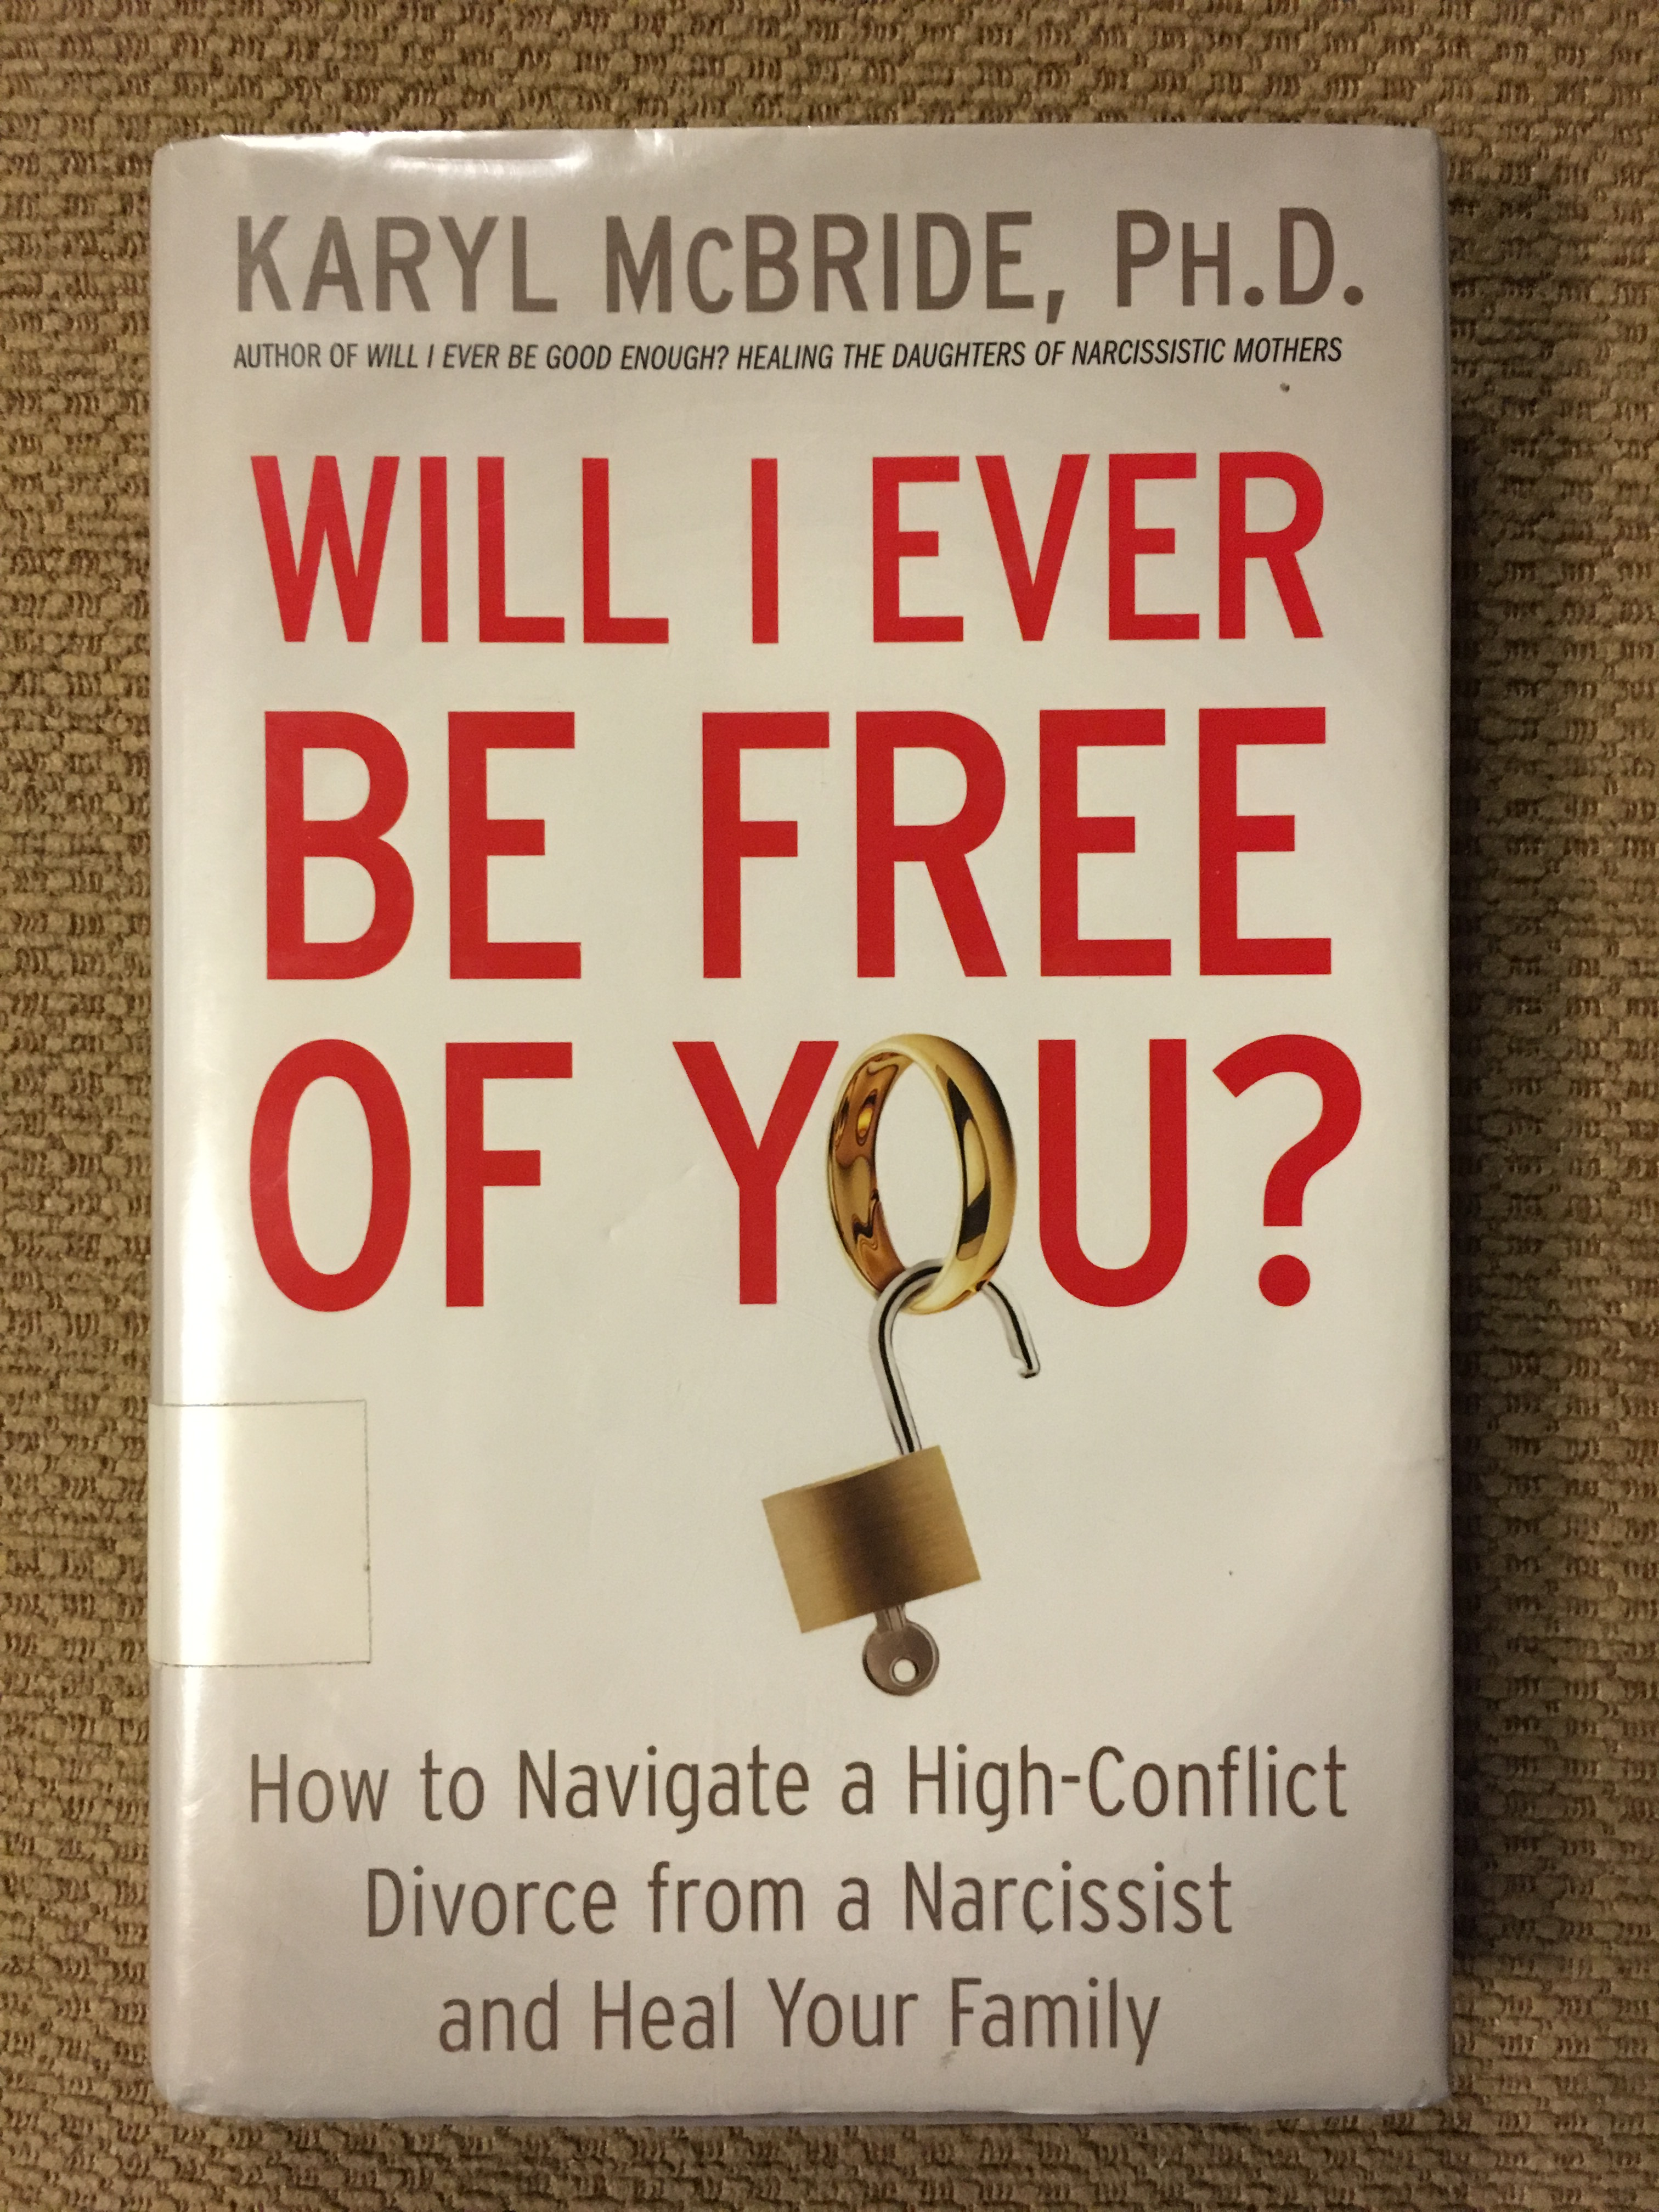 How to divorce a narcissist book